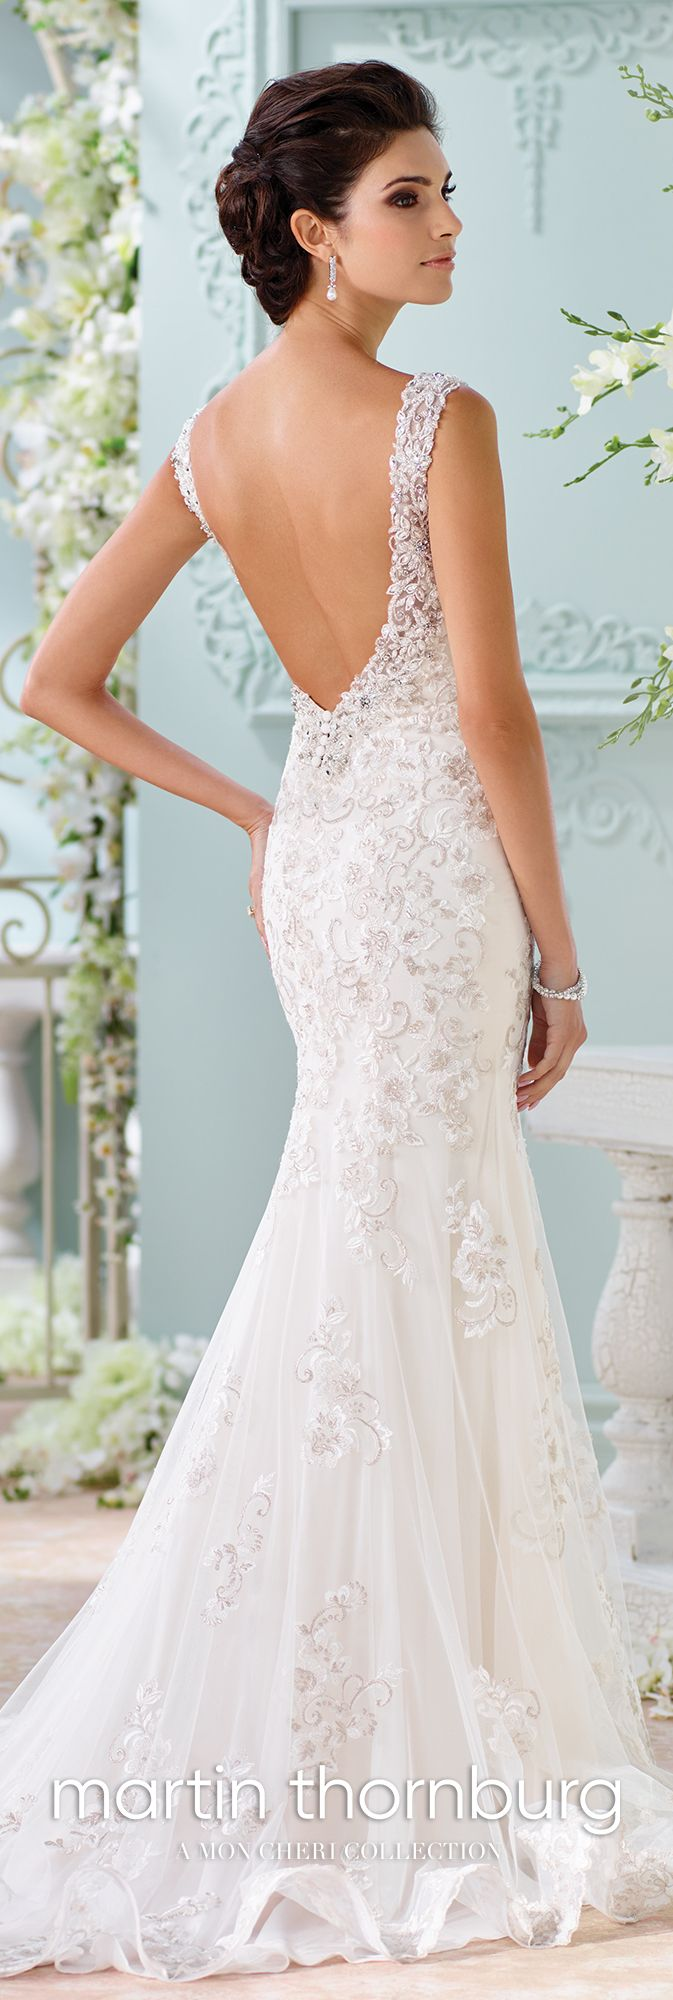 Fit and flare handbeaded lace wedding dress colesha